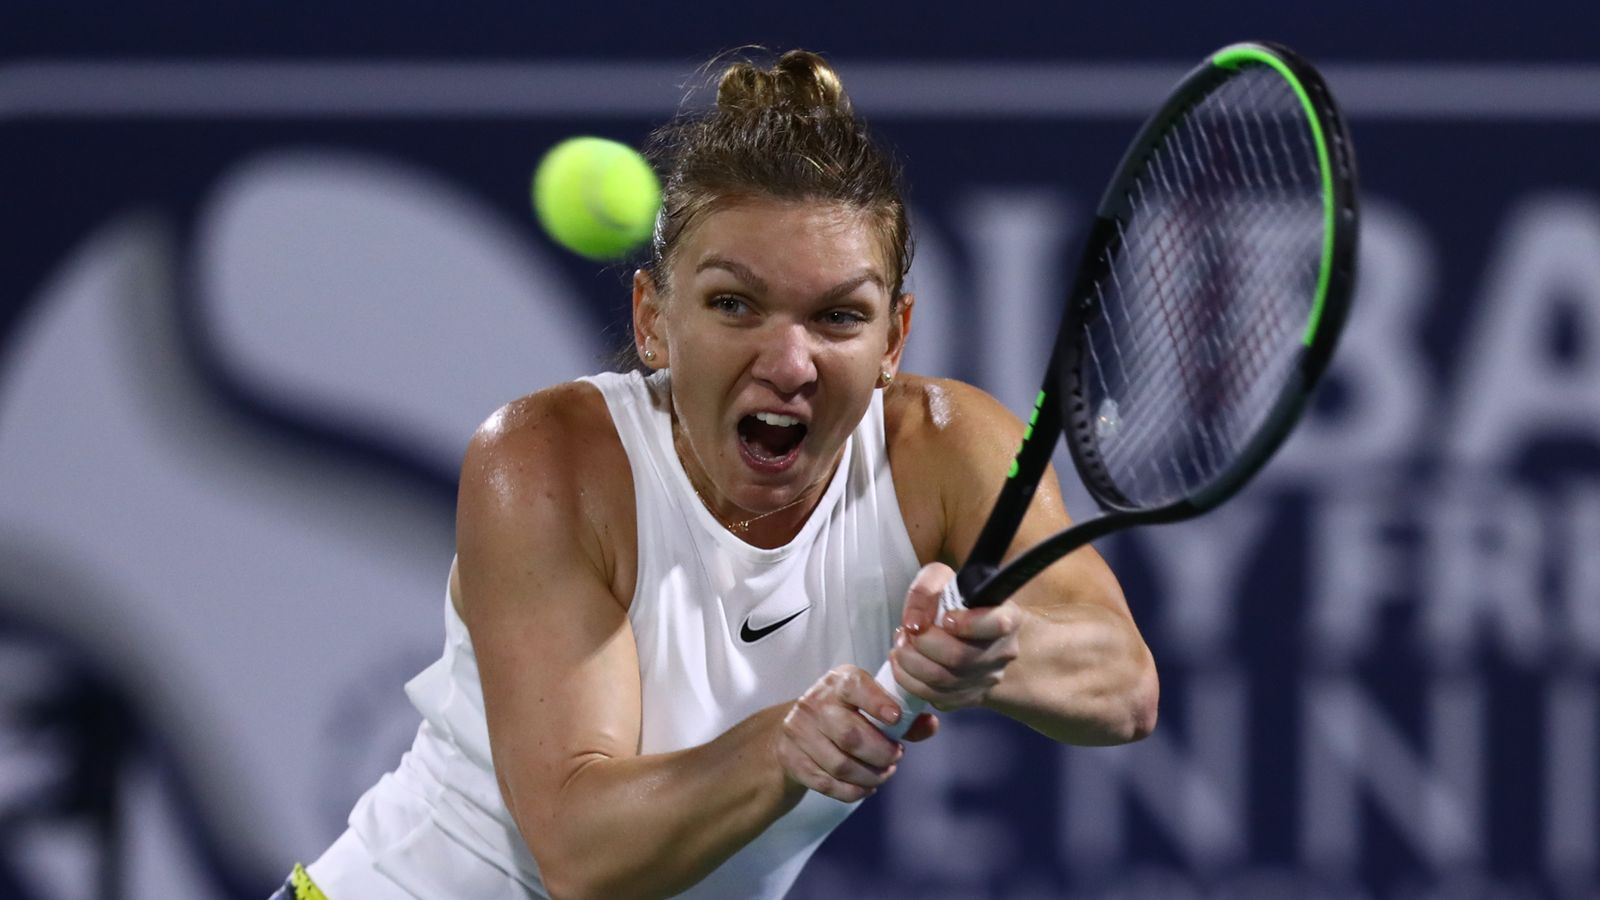 Simona Halep claims first title of 2020 at Dubai Duty Free Championships